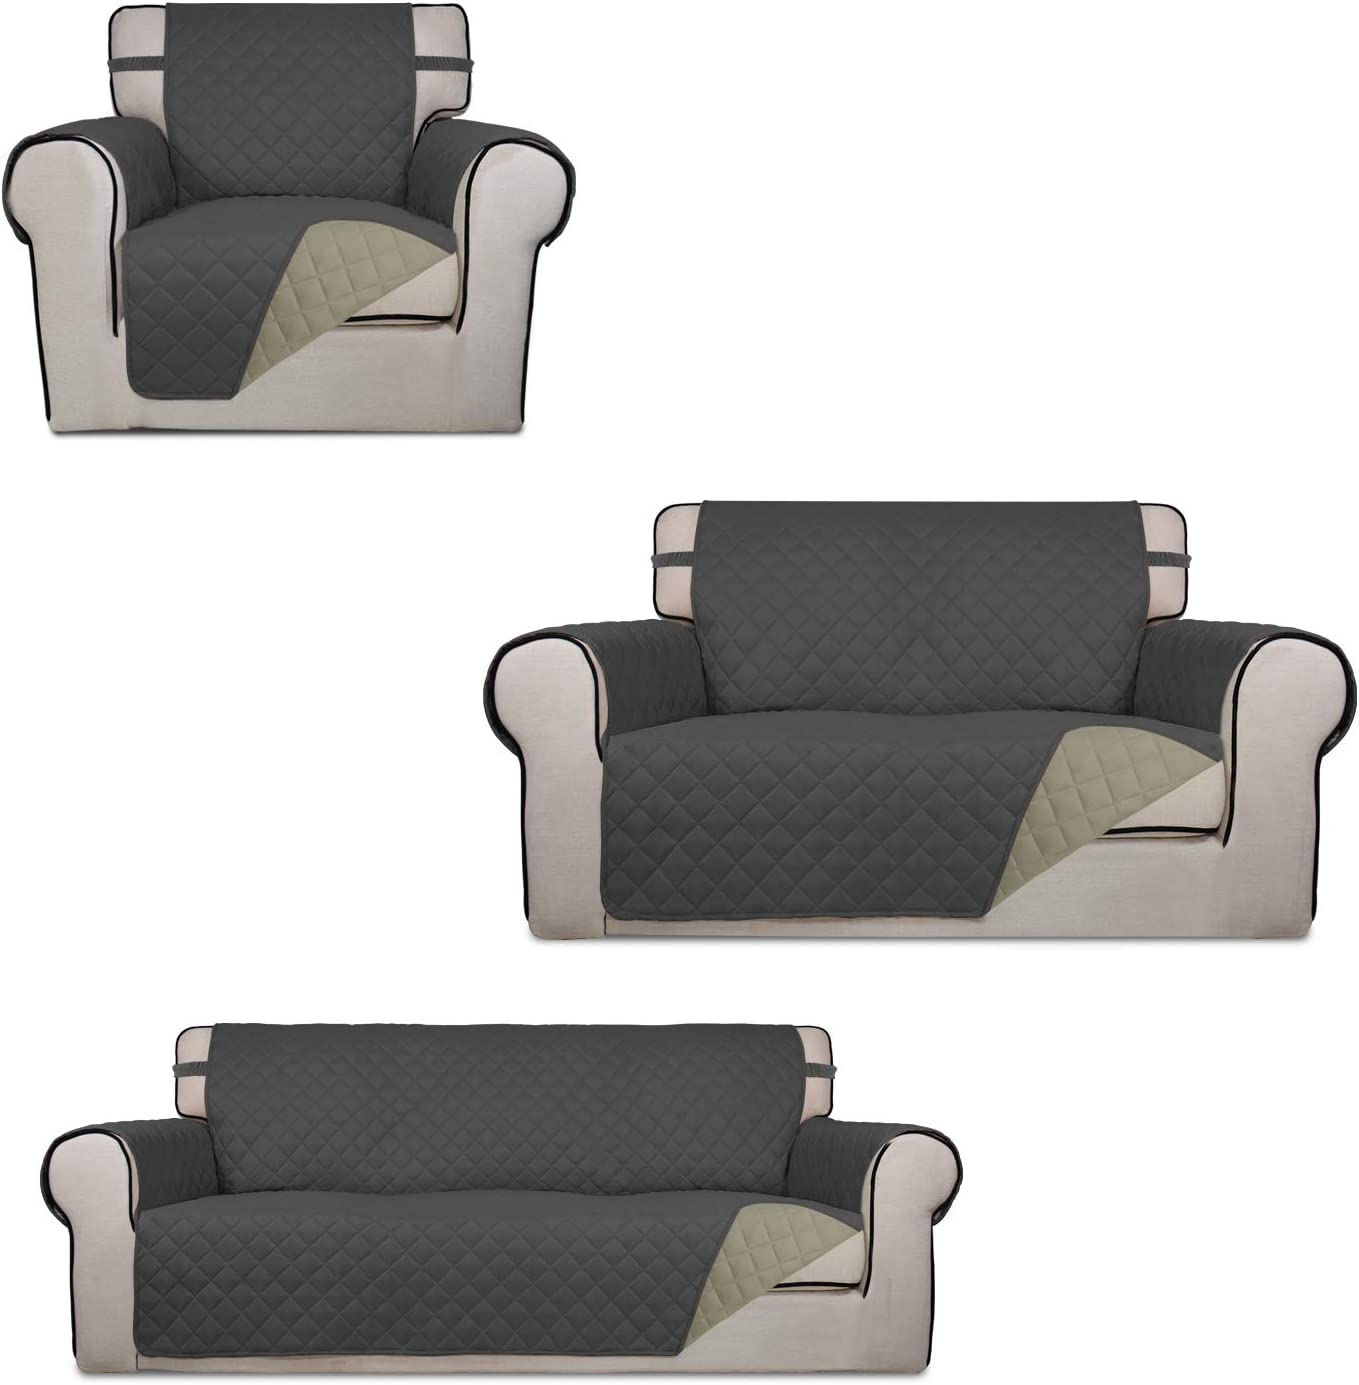 PureFit Chair Loveseat Sofa Cover Bundles Reversible Dark Gray/Beige Couch Cover